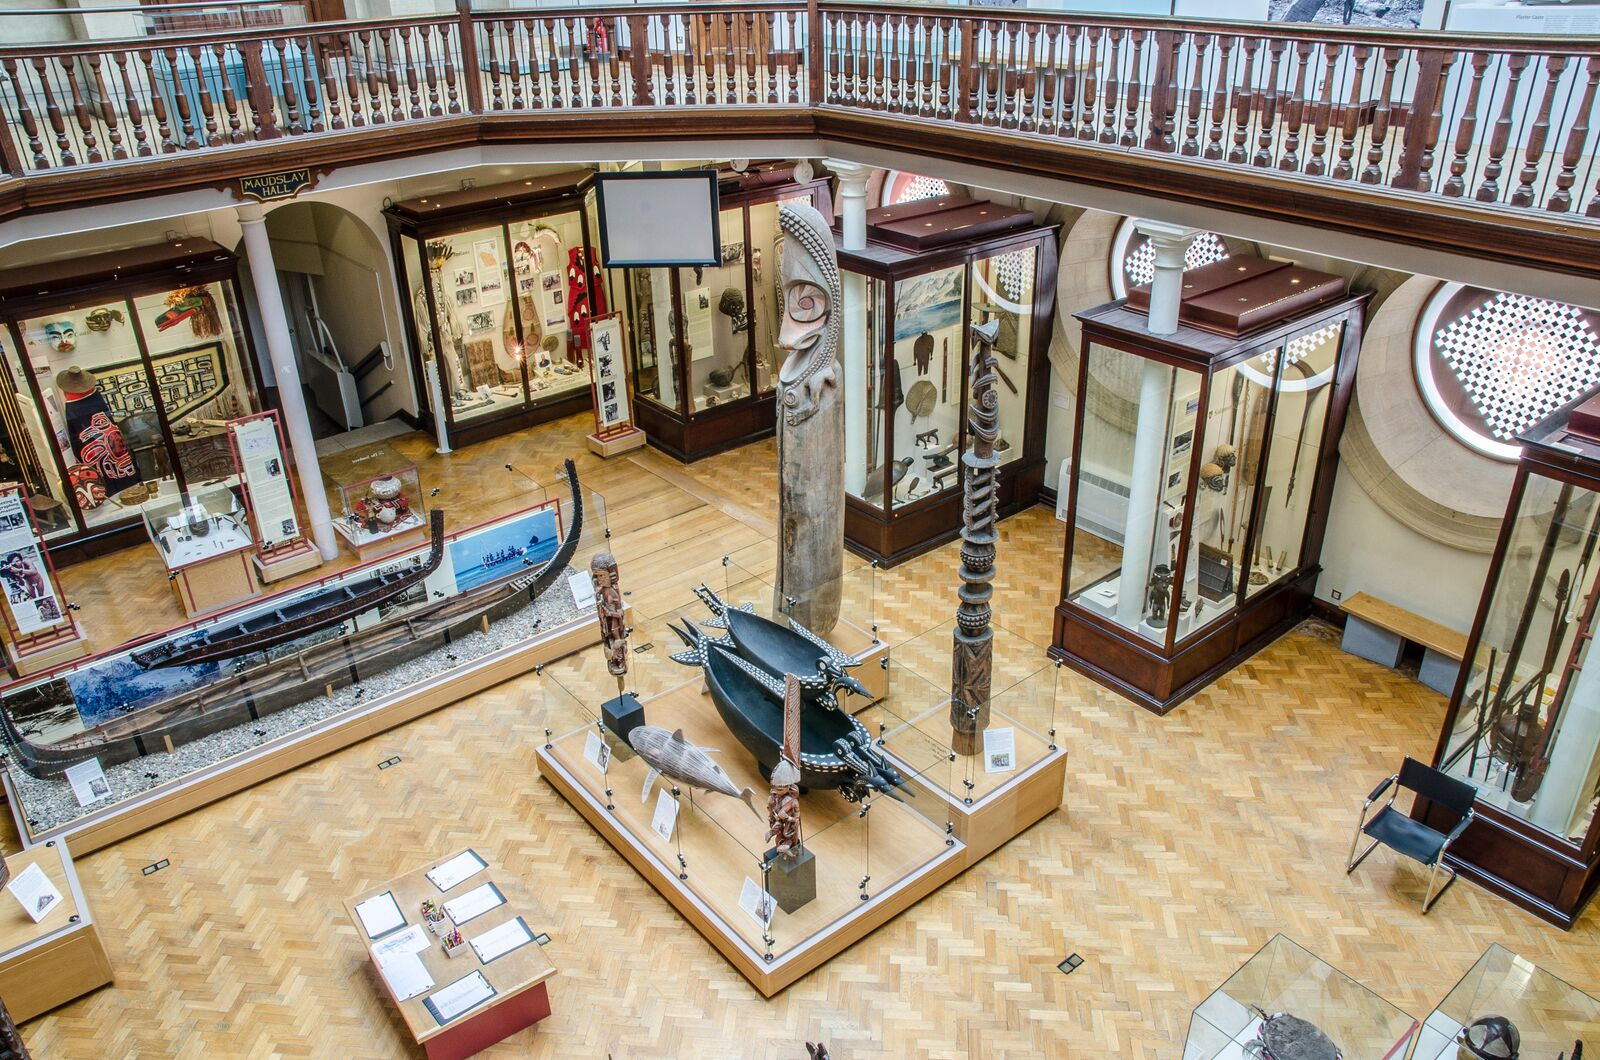 A view of the Maudslay Gallery from above